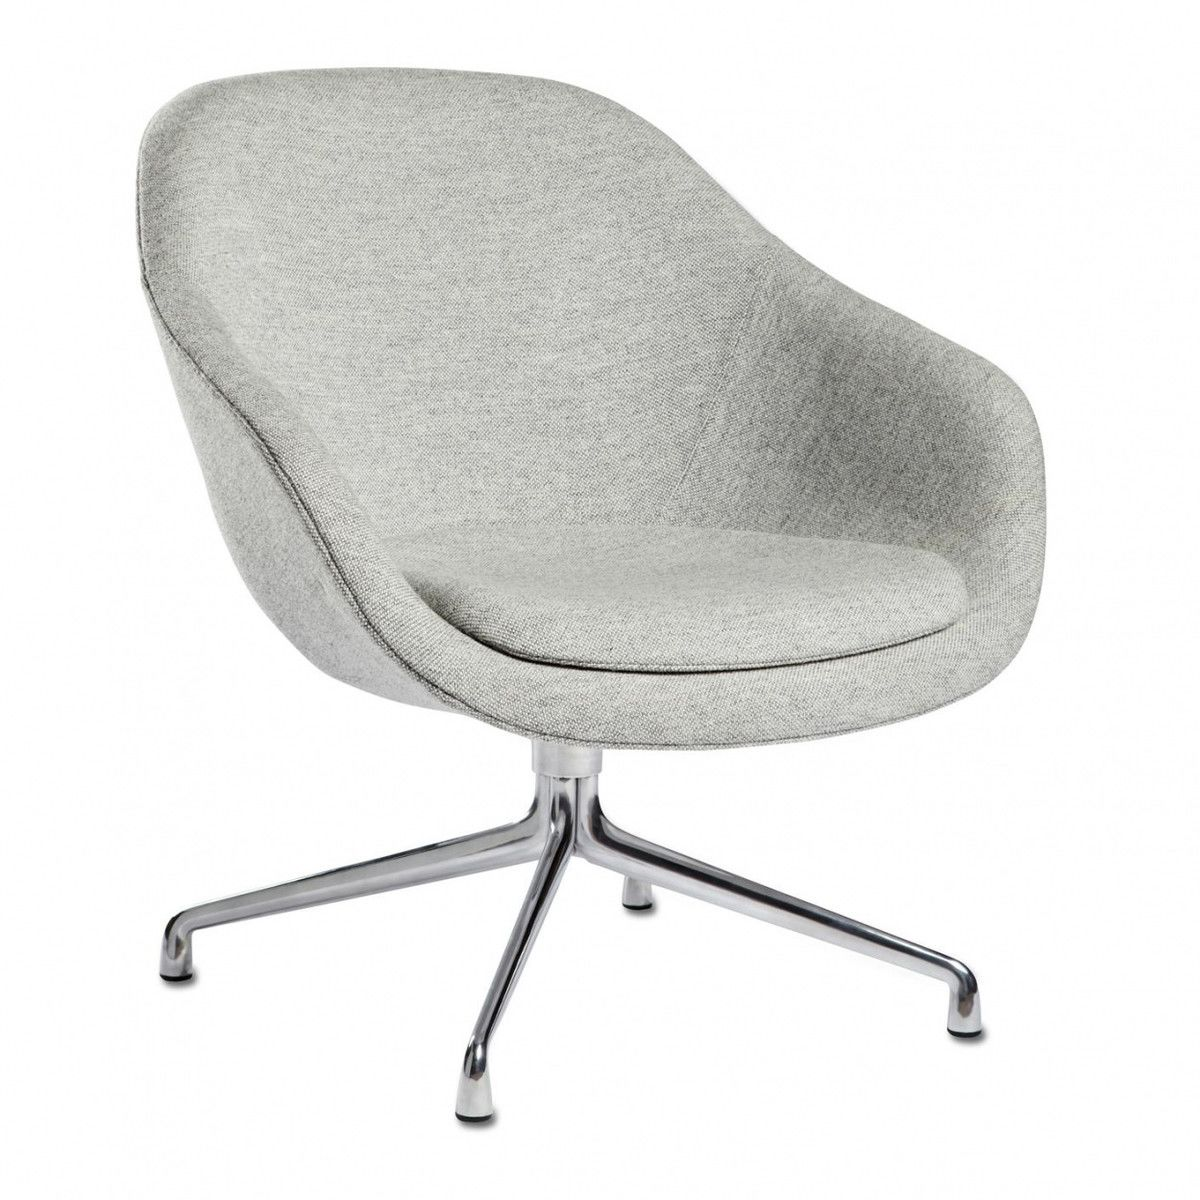 Hay Sessel About A Lounge Chair Aal81 Sessel Hay Ambientedirect